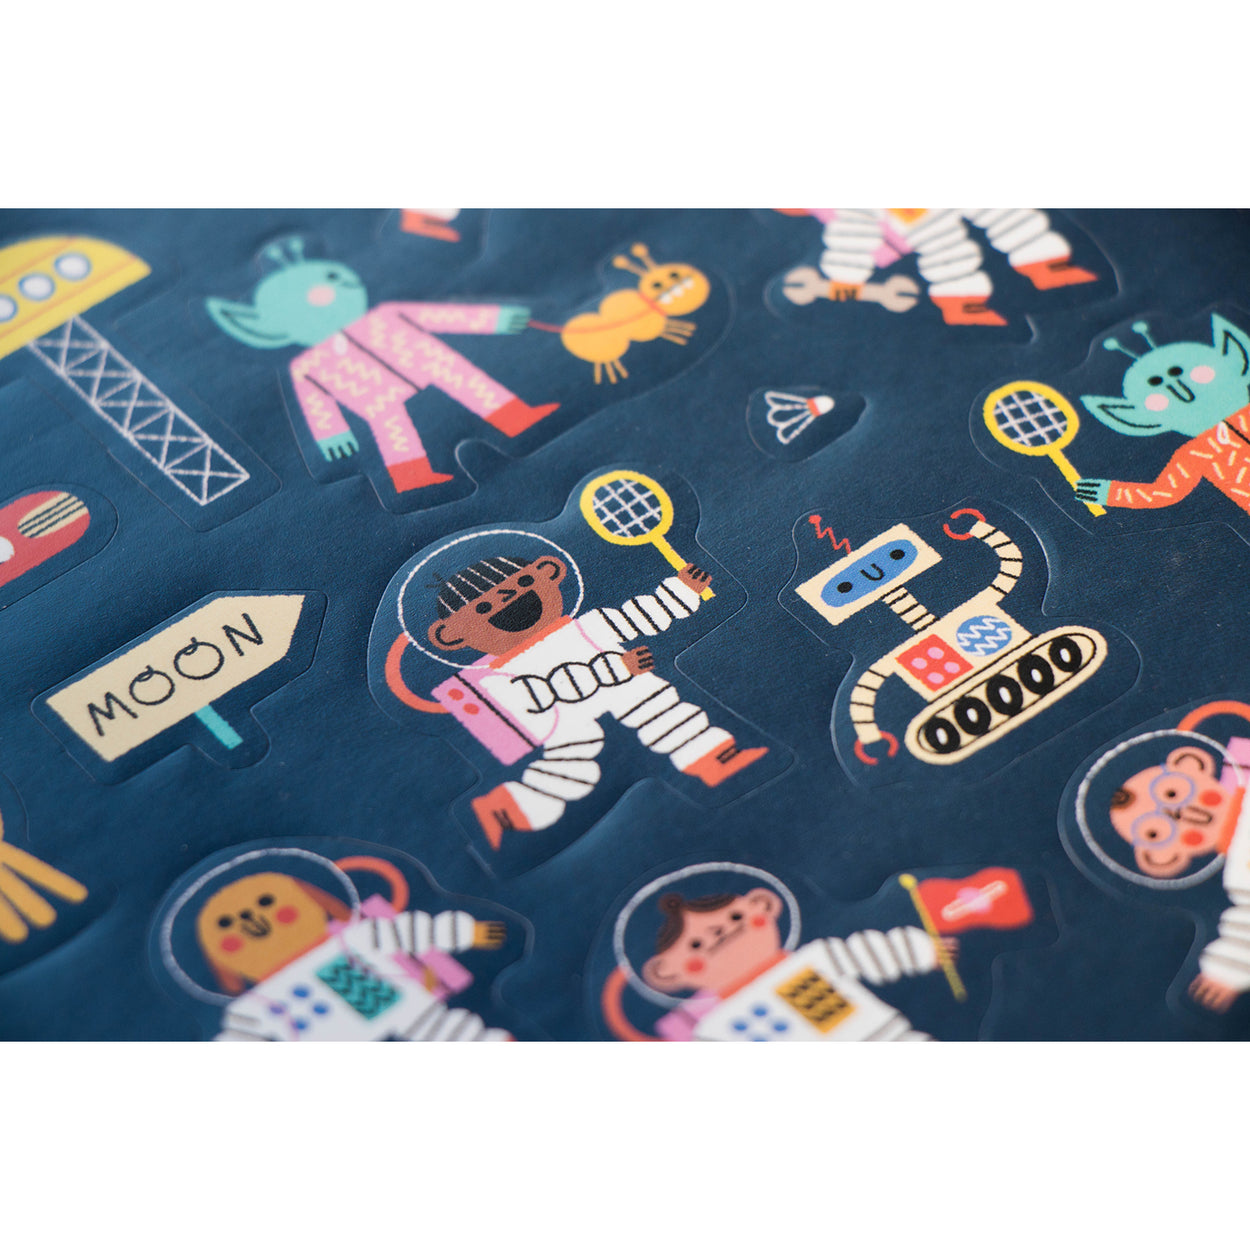 Space stickers for kids